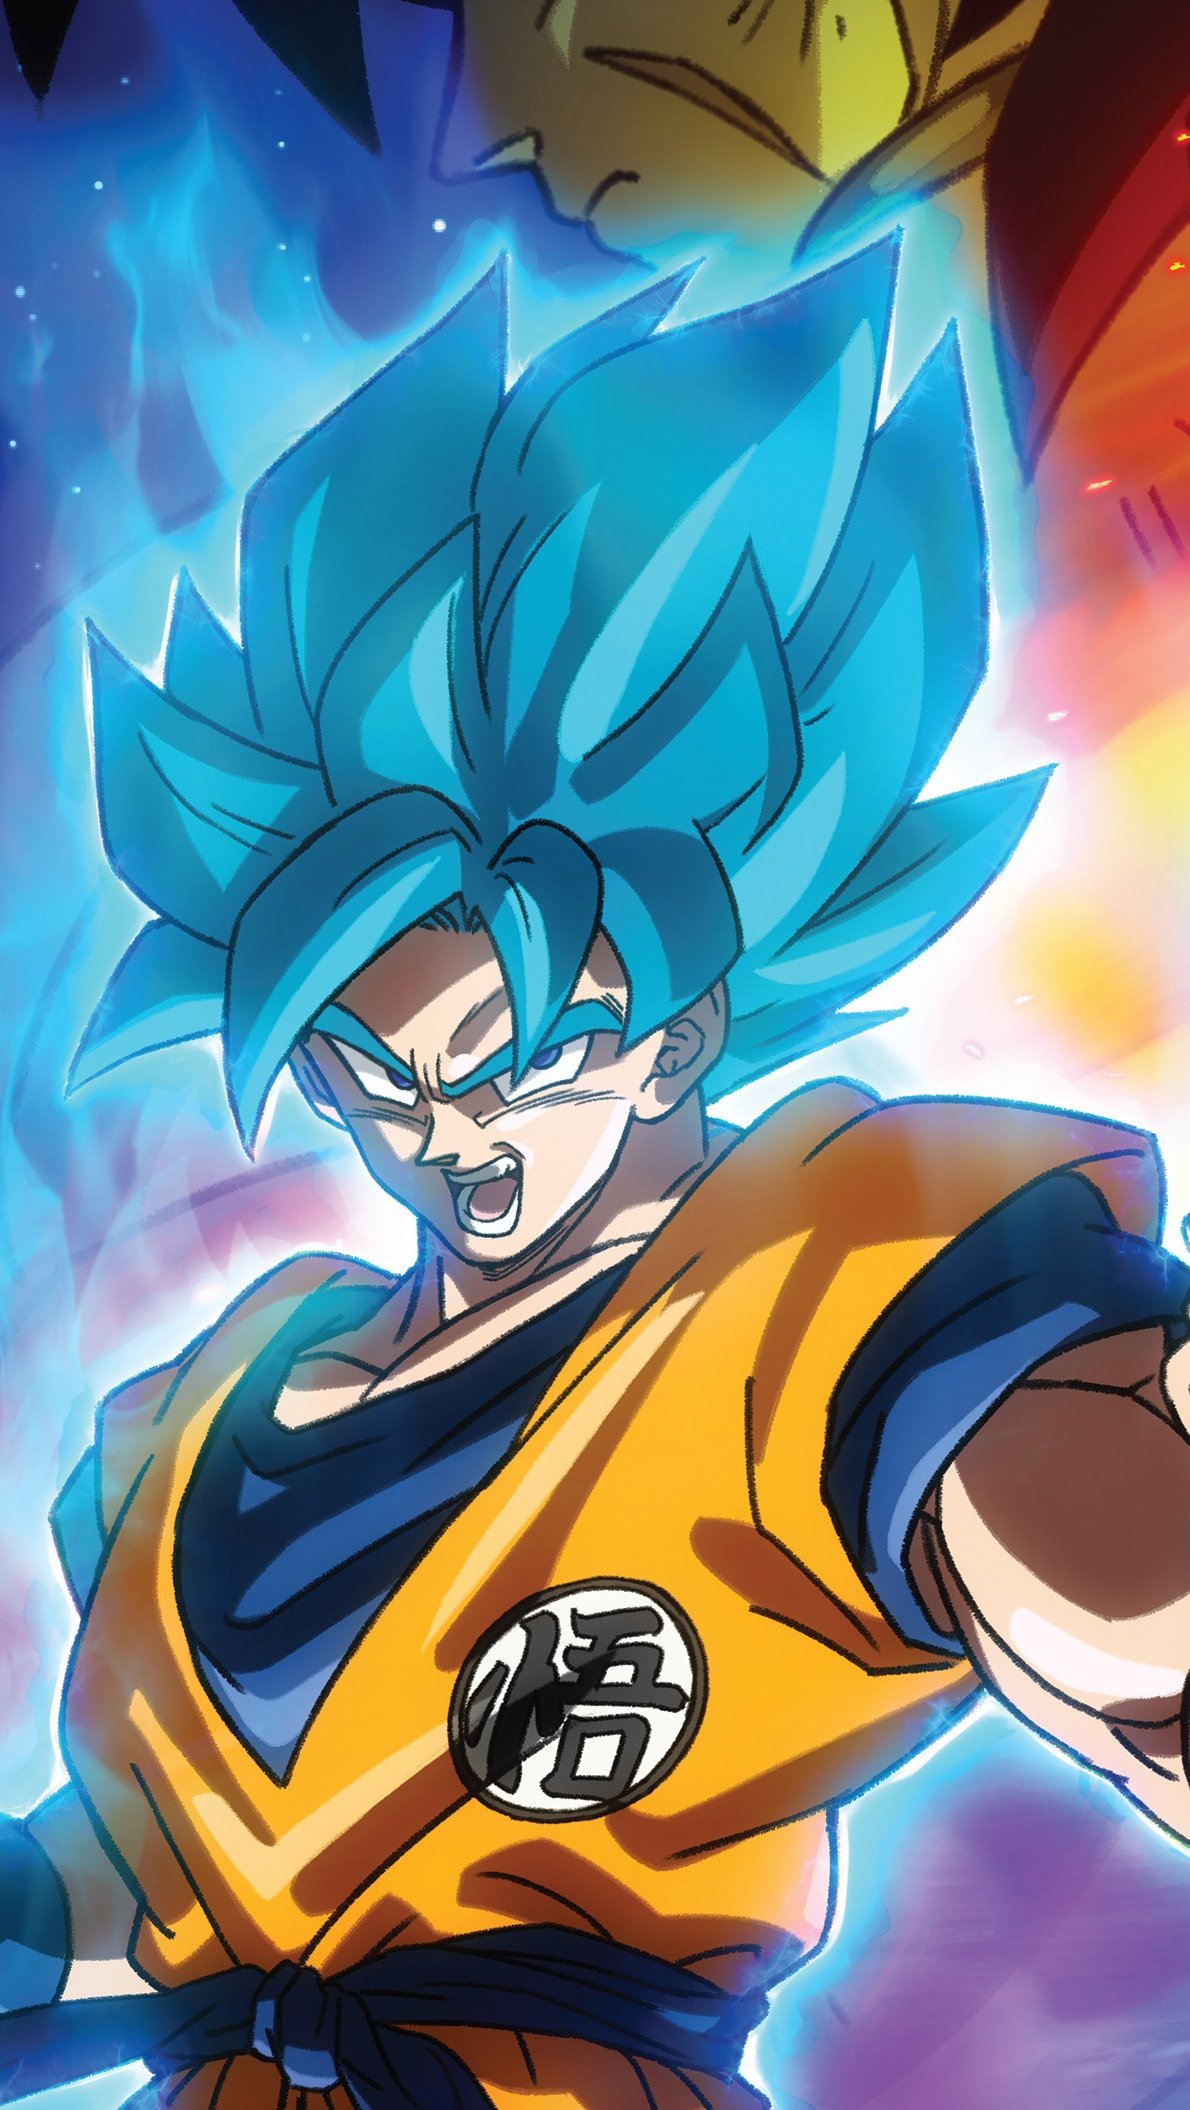 Goku And Vegeta In Dragon Ball Super Broly Movie Anime Wallpaper Id 4544